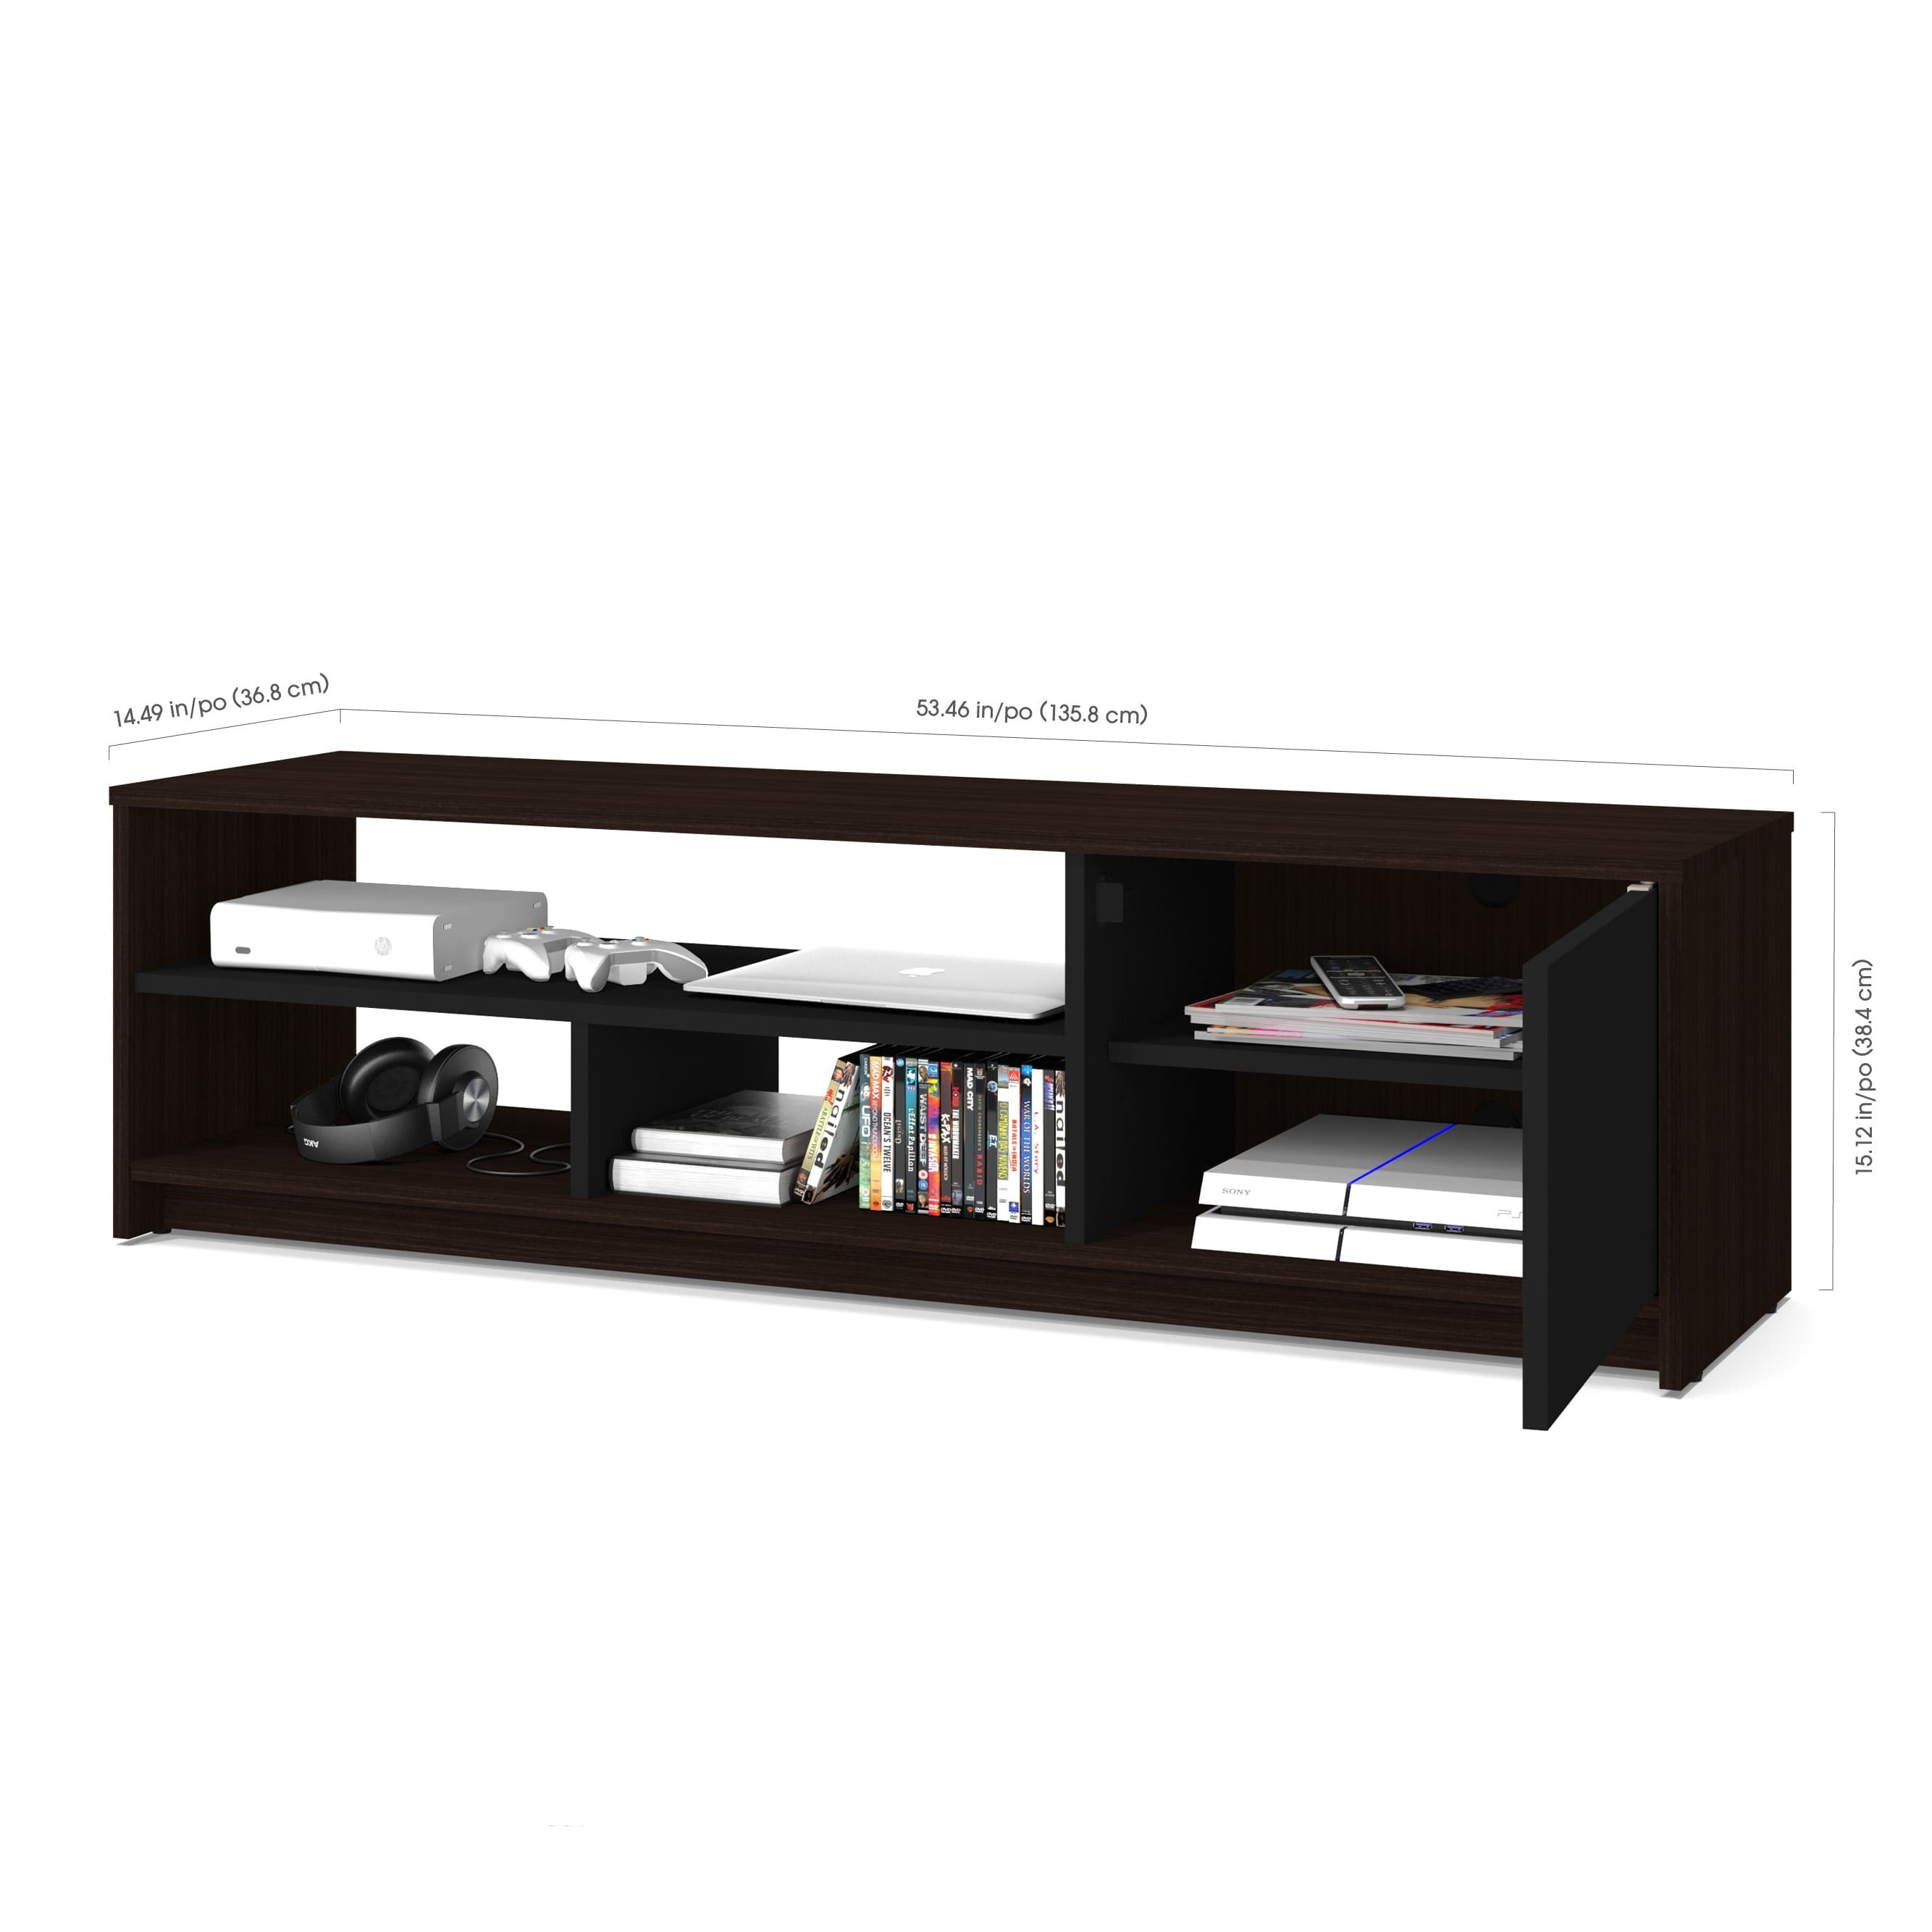 Bestar Small Space 3 Piece Tv Stand and 2 Storage towers Set Free Meja